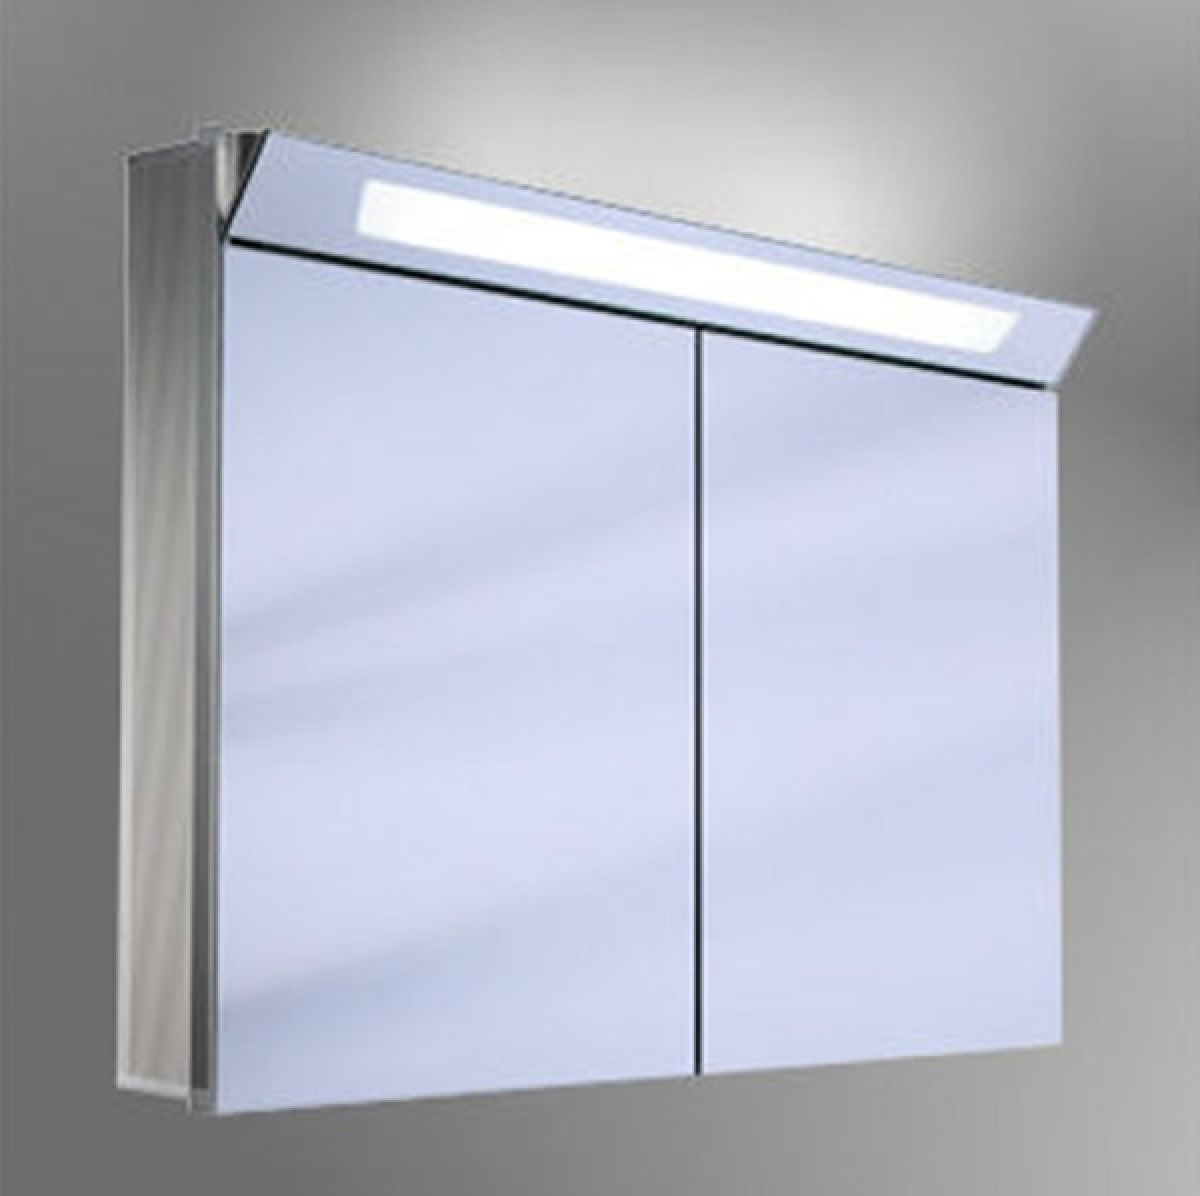 Schneider Capeline Illuminated Bathroom Mirror Cabinet